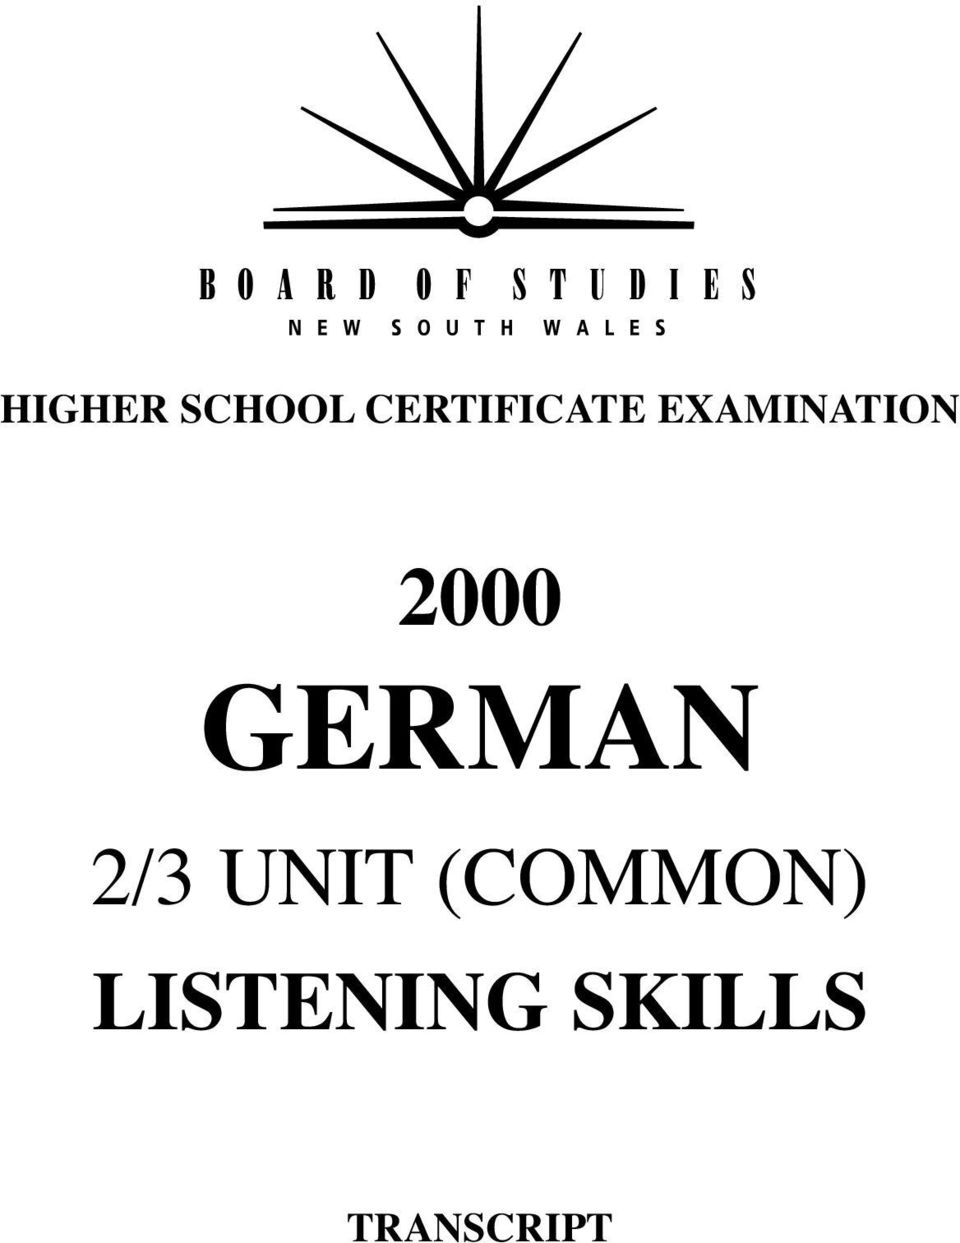 2000 GERMAN 2/3 UNIT